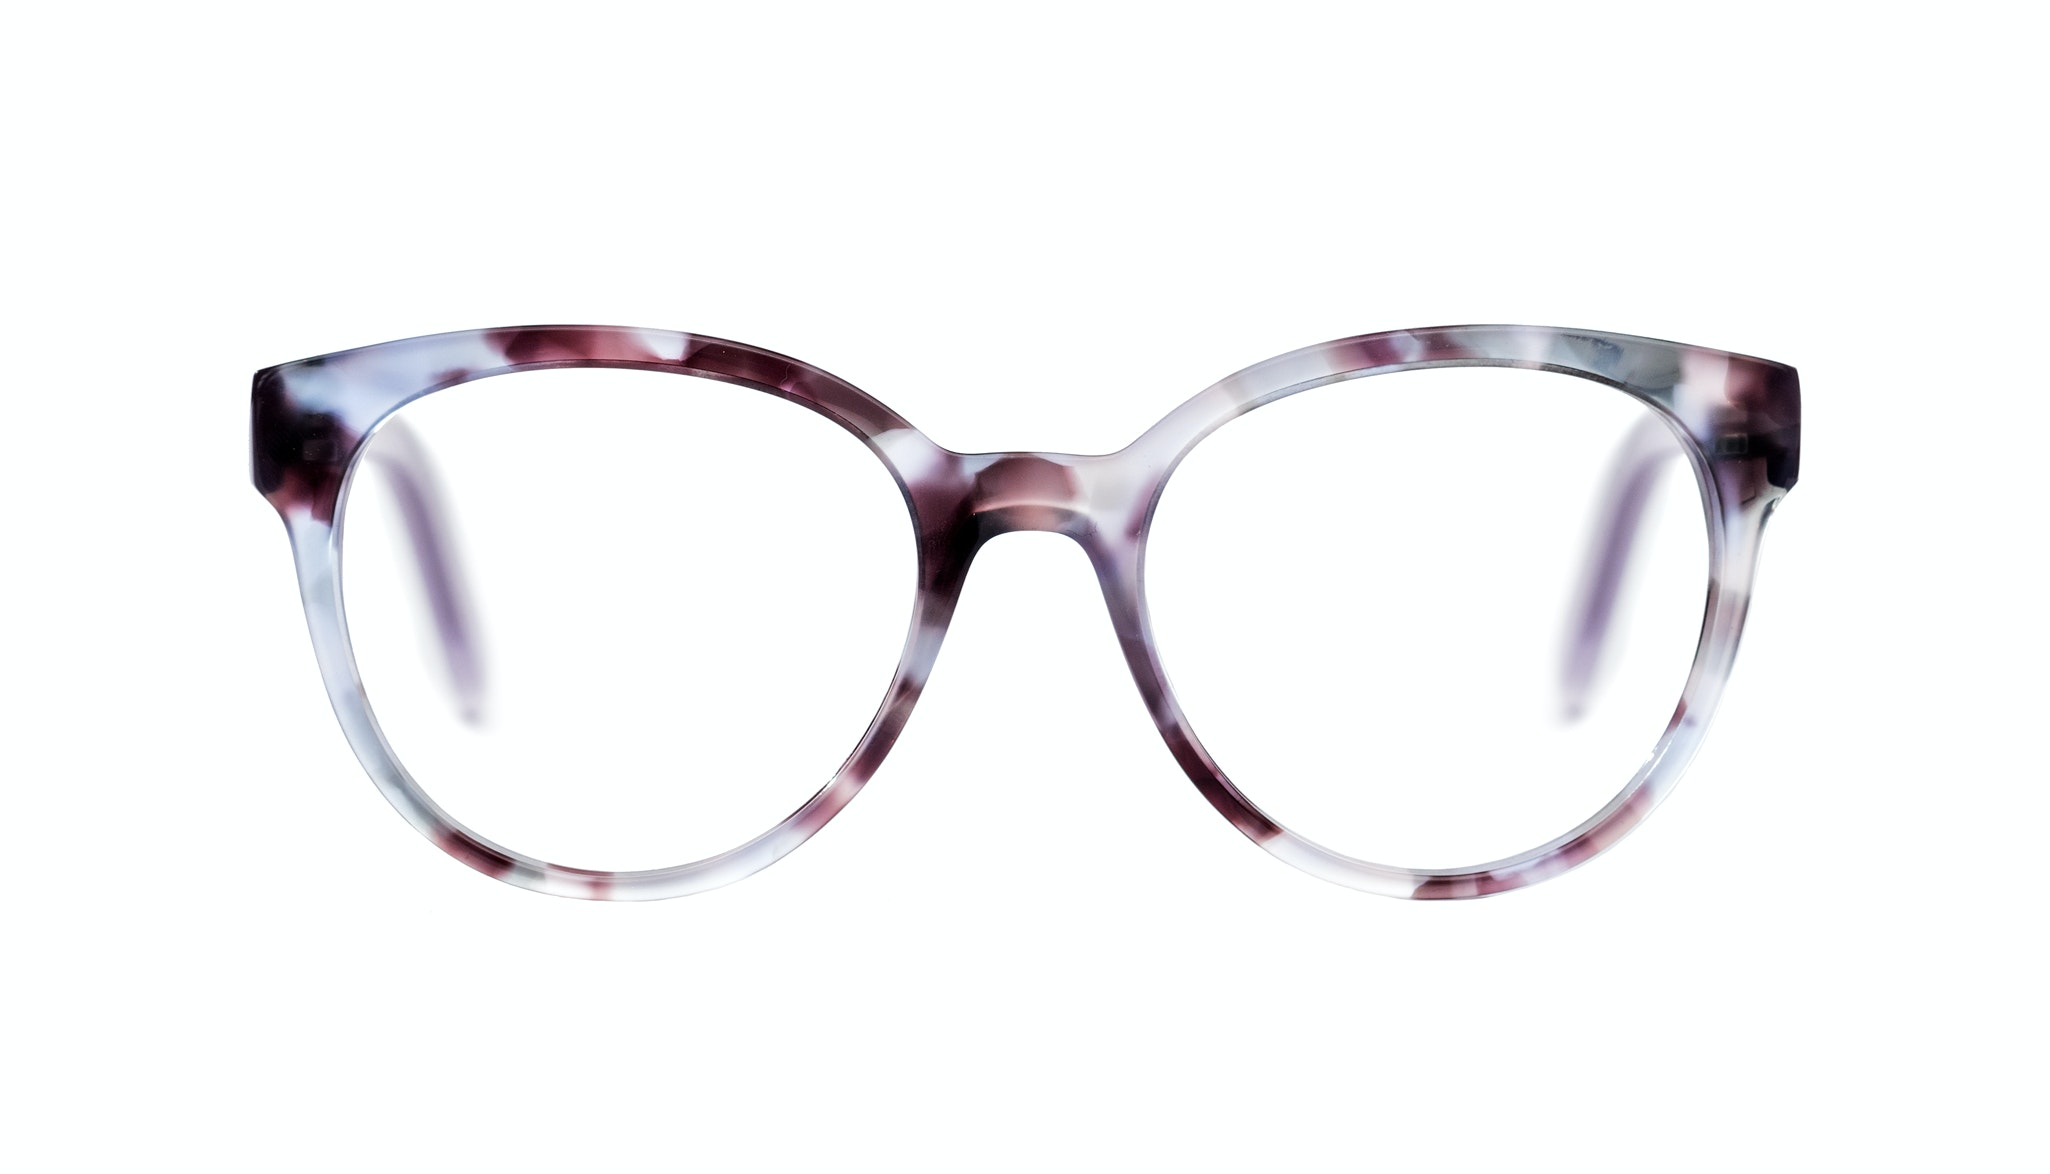 Affordable Fashion Glasses Cat Eye Round Eyeglasses Women Eclipse Lilac Tort